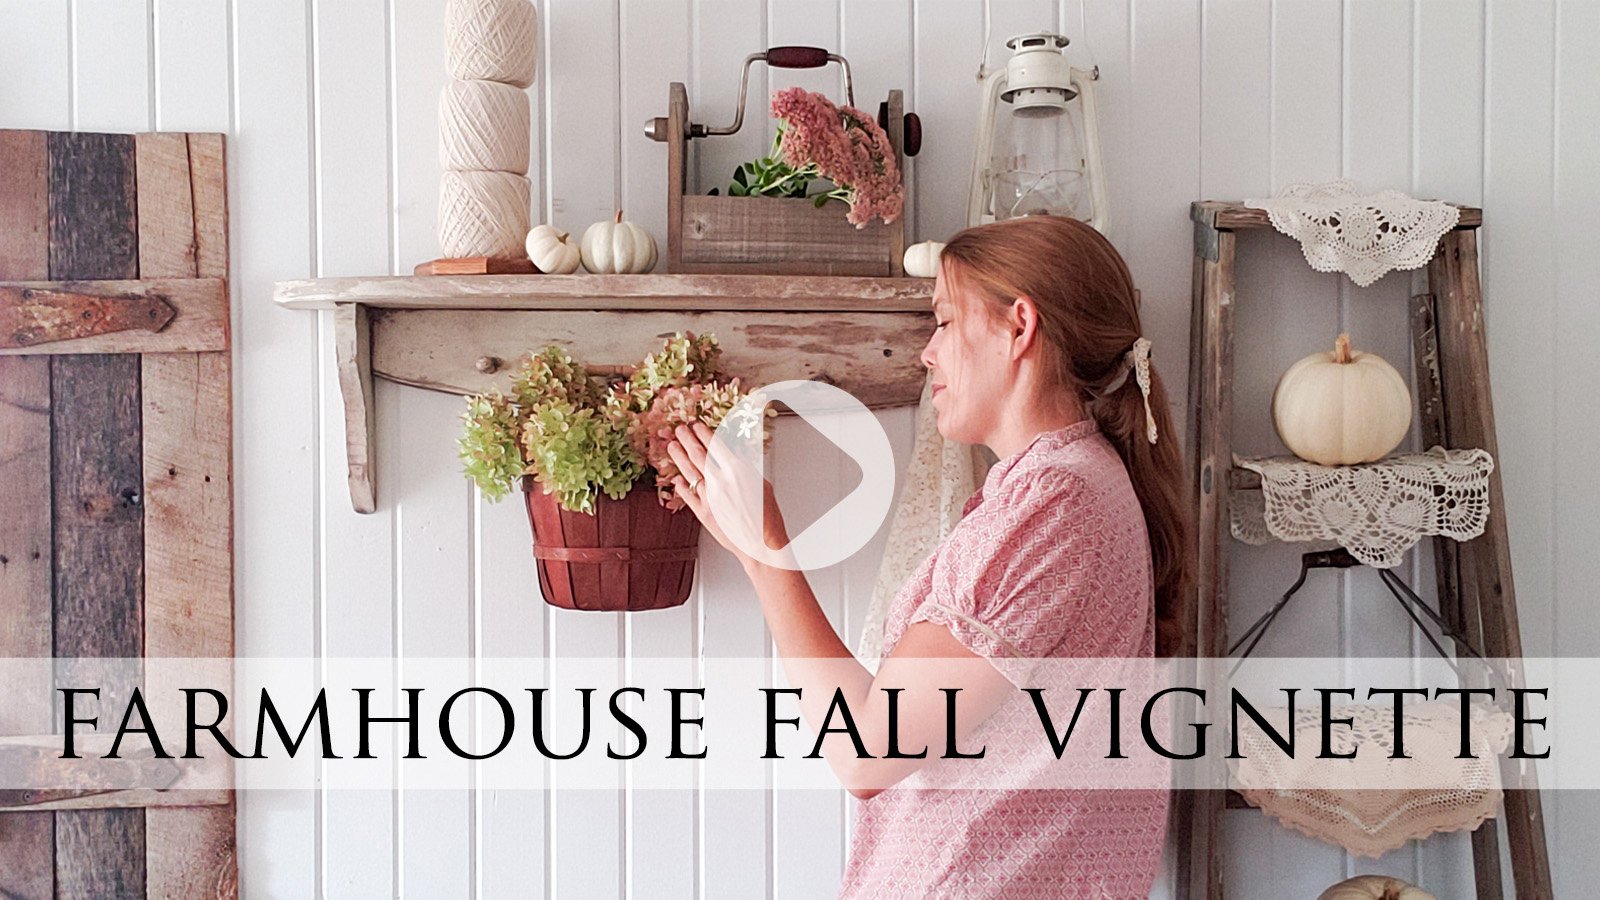 DIY Farmhouse Fall Vignette from Thrifted Finds by Larissa of Prodigal Pieces | prodigalpieces.com #prodigalpieces